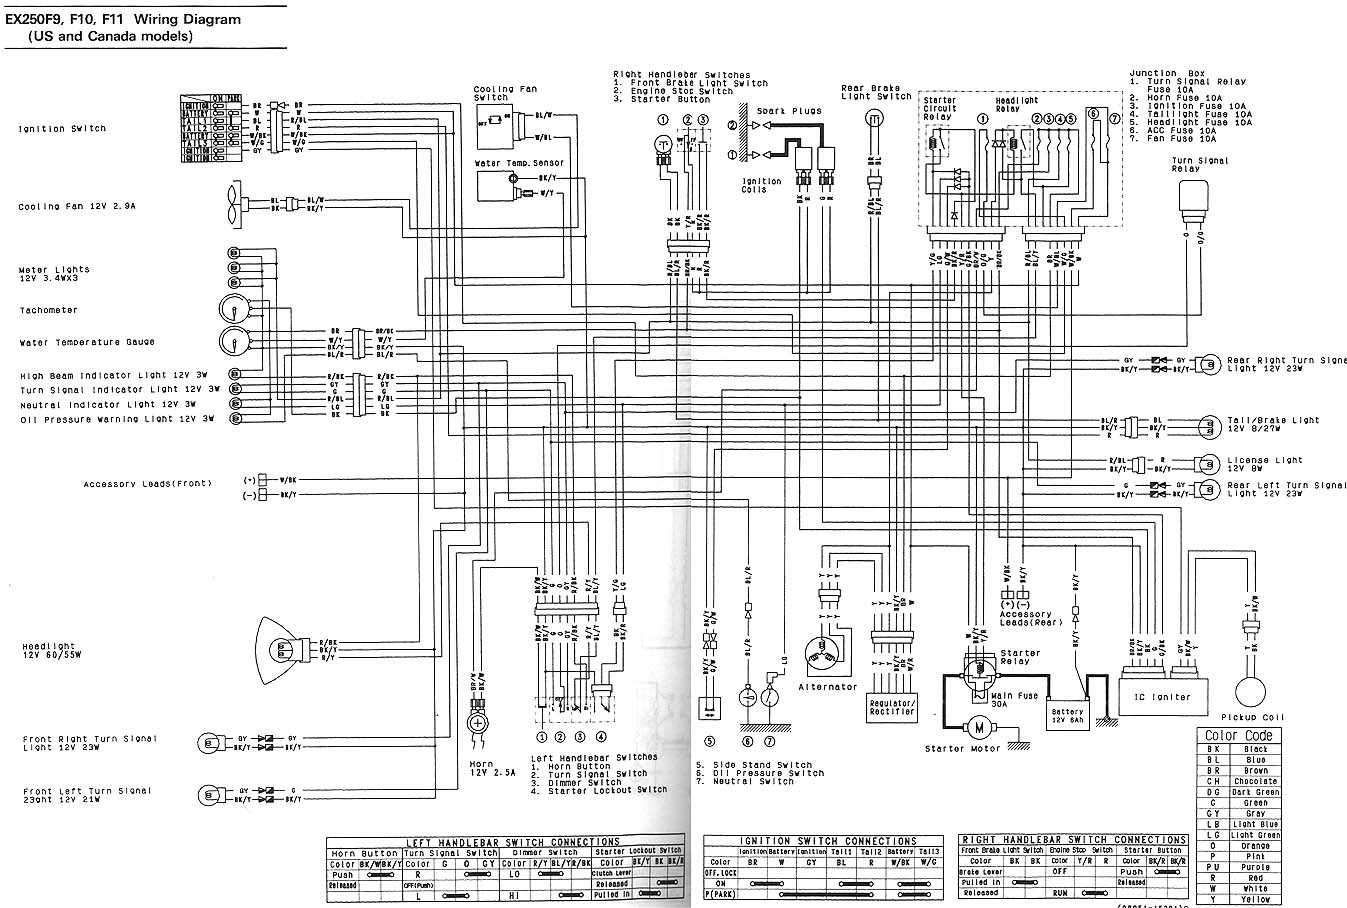 Kawasaki 800 Wiring Diagram - DIY Wiring Diagrams • on 1999 kawasaki vulcan 500, 2001 kawasaki vulcan 800, 1995 kawasaki vulcan 800, saddlebags on vulcan 800, 1989 kawasaki vulcan 800, 1999 kawasaki vulcan 1500, high-mileage kawasaki vulcan 800, dresser bars vulcan 800, kawasaki motorcycles vulcan 800, 1994 kawasaki vulcan 800,